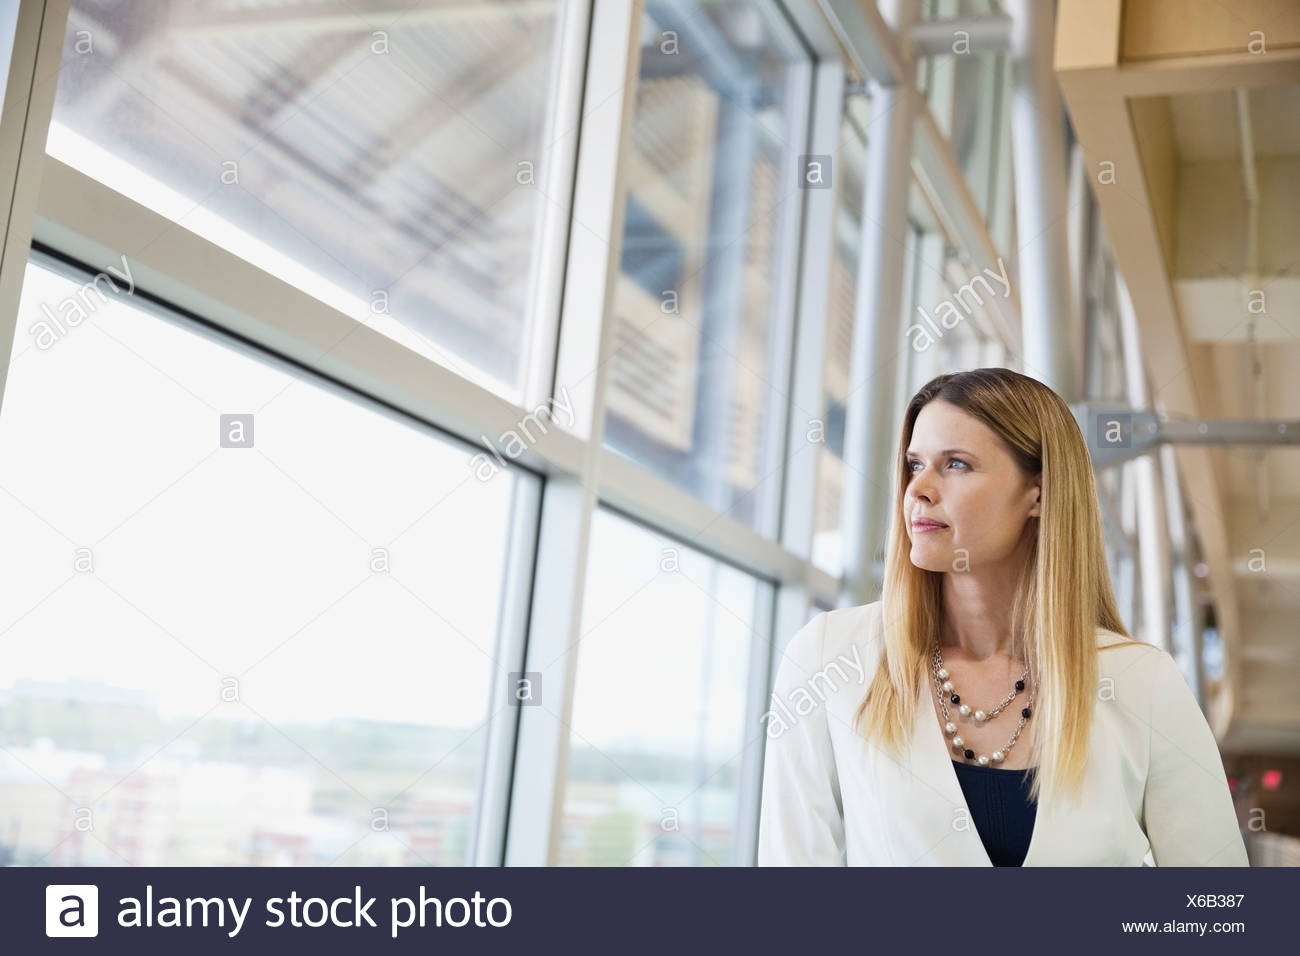 Thoughtful businesswoman looking out window Photo Stock